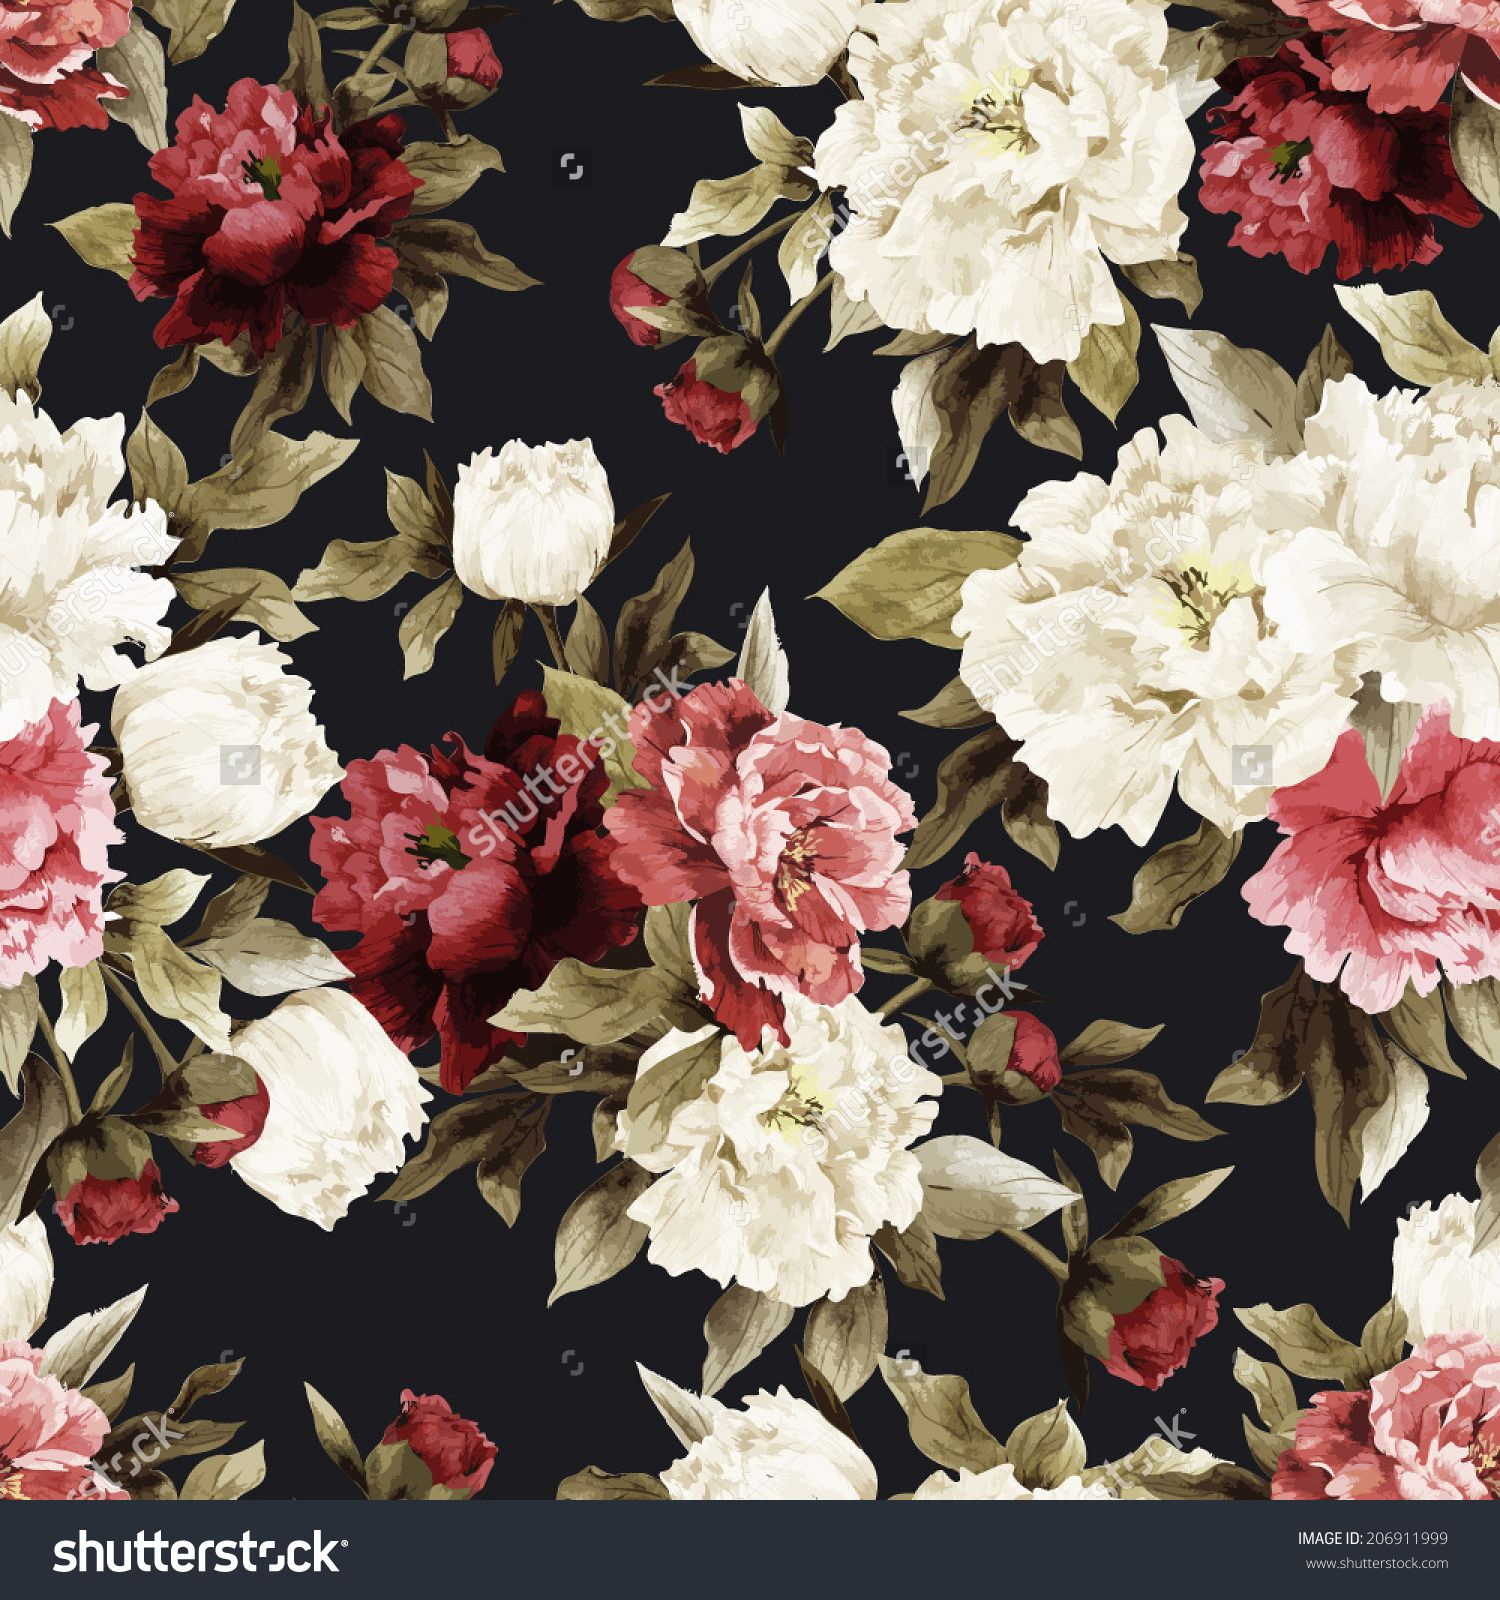 Stock Vector Seamless Floral Pattern With Roses On Dark Background